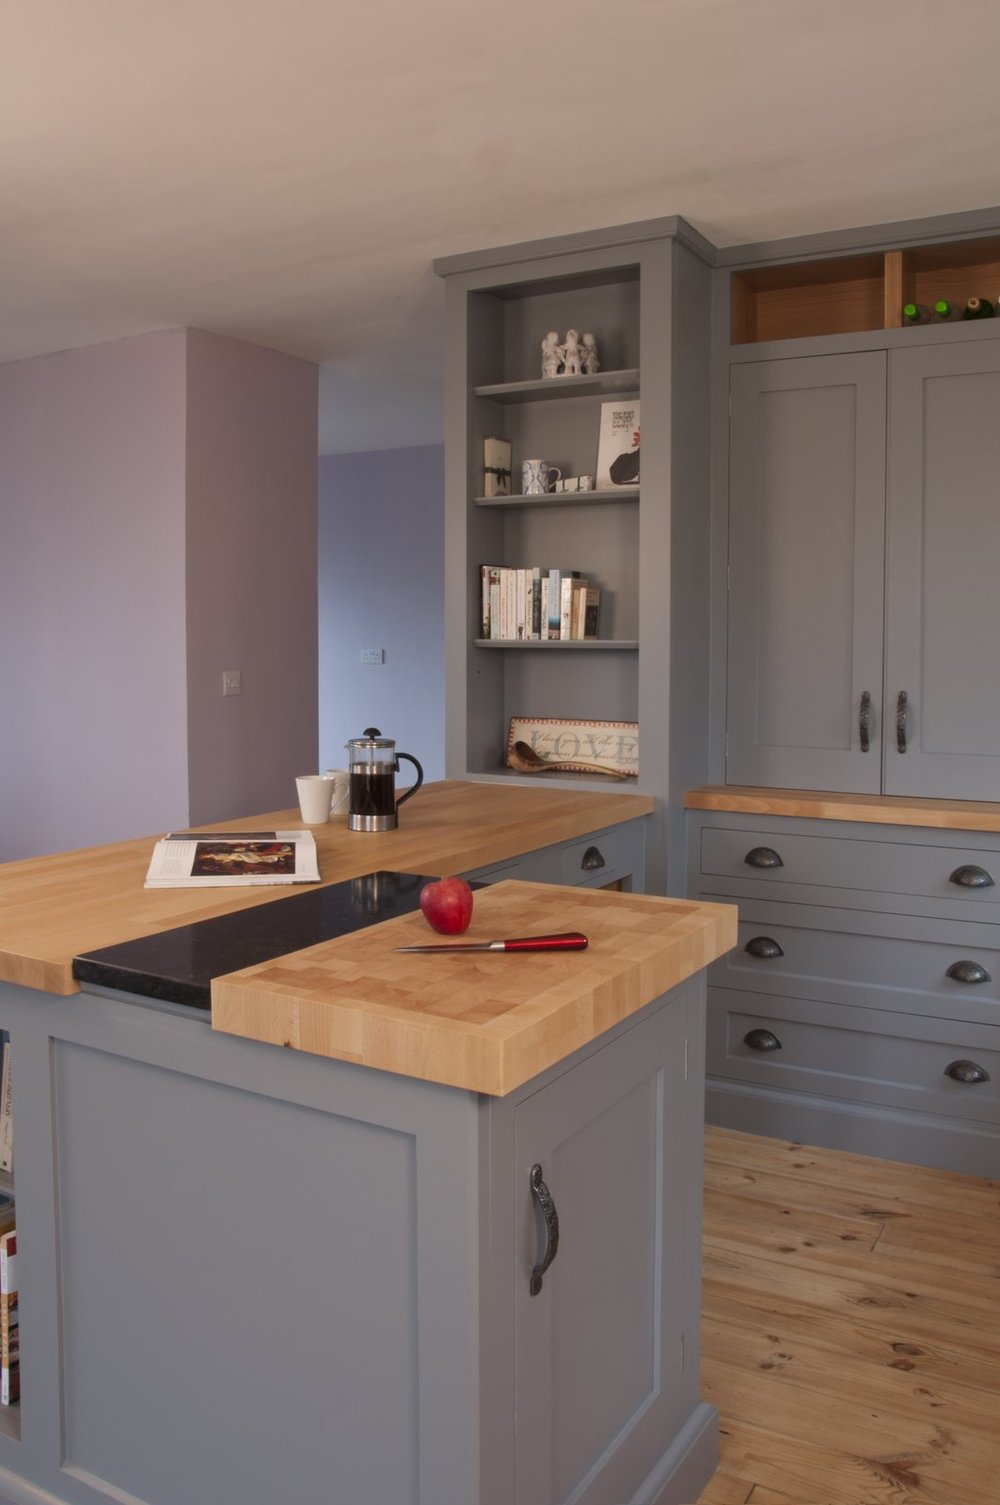 Talisman Woodworks - Handcrafted bespoke kitchen design